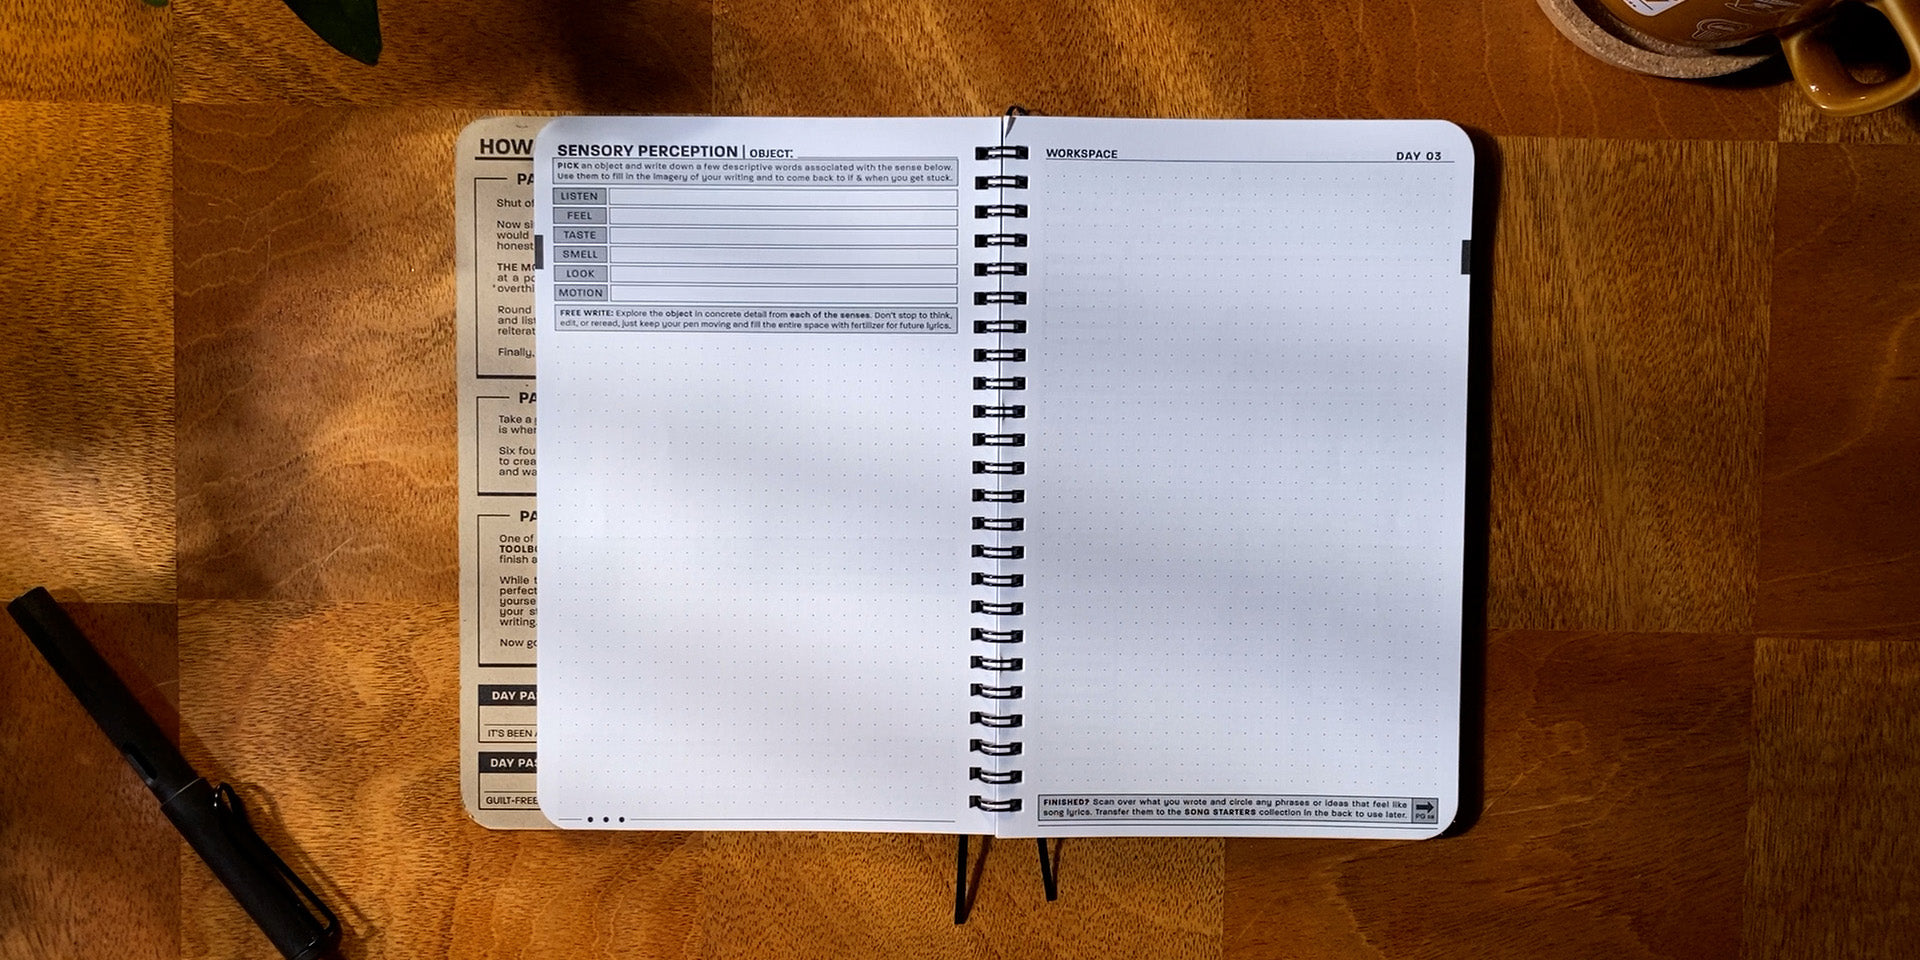 Practice Workbook open to the Figurative Exercise page